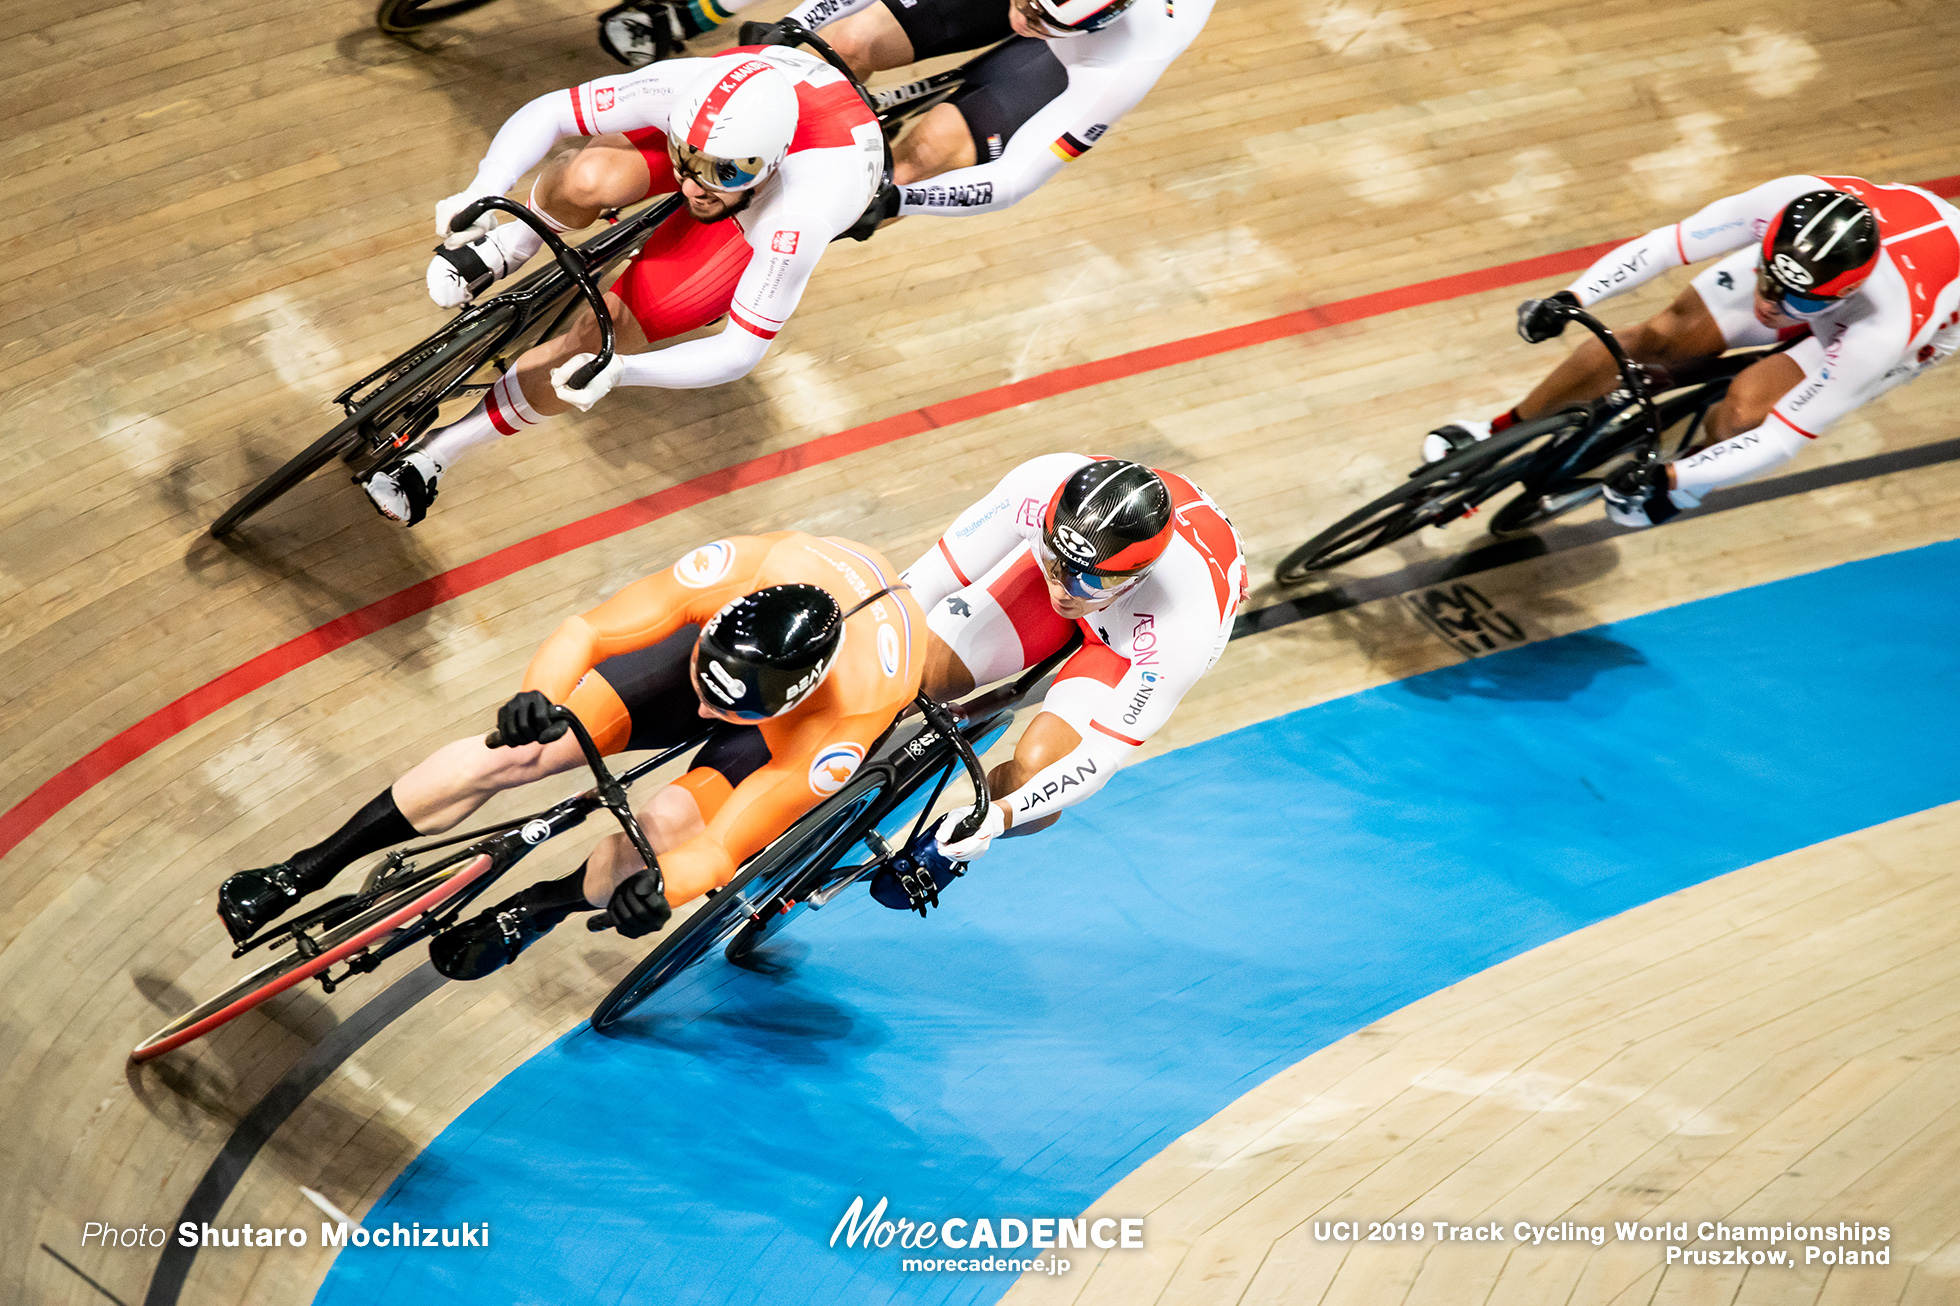 Men's Keirin 2nd Round / 2019 Track Cycling World Championships Pruszków, Poland